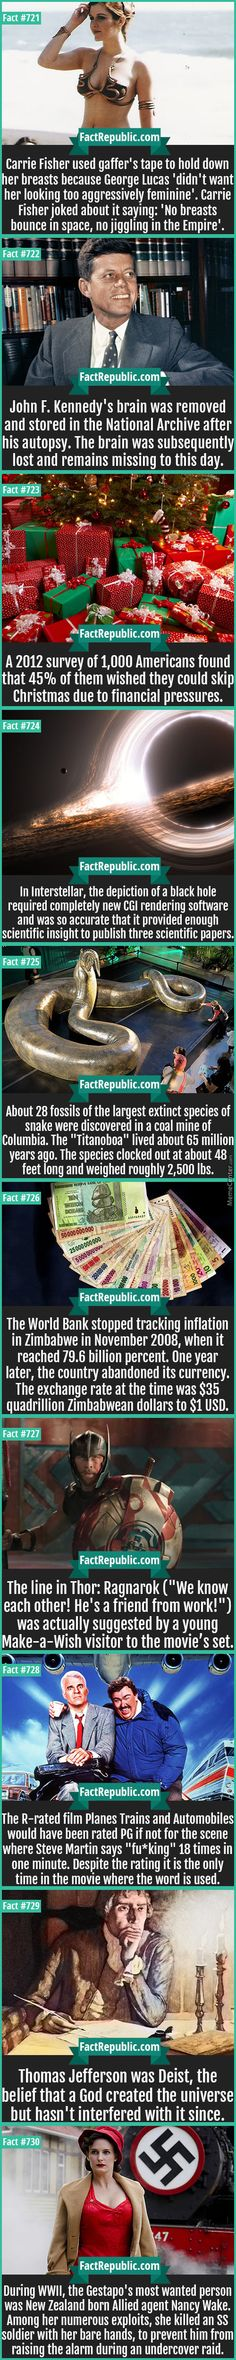 Some facts that might be cool to know